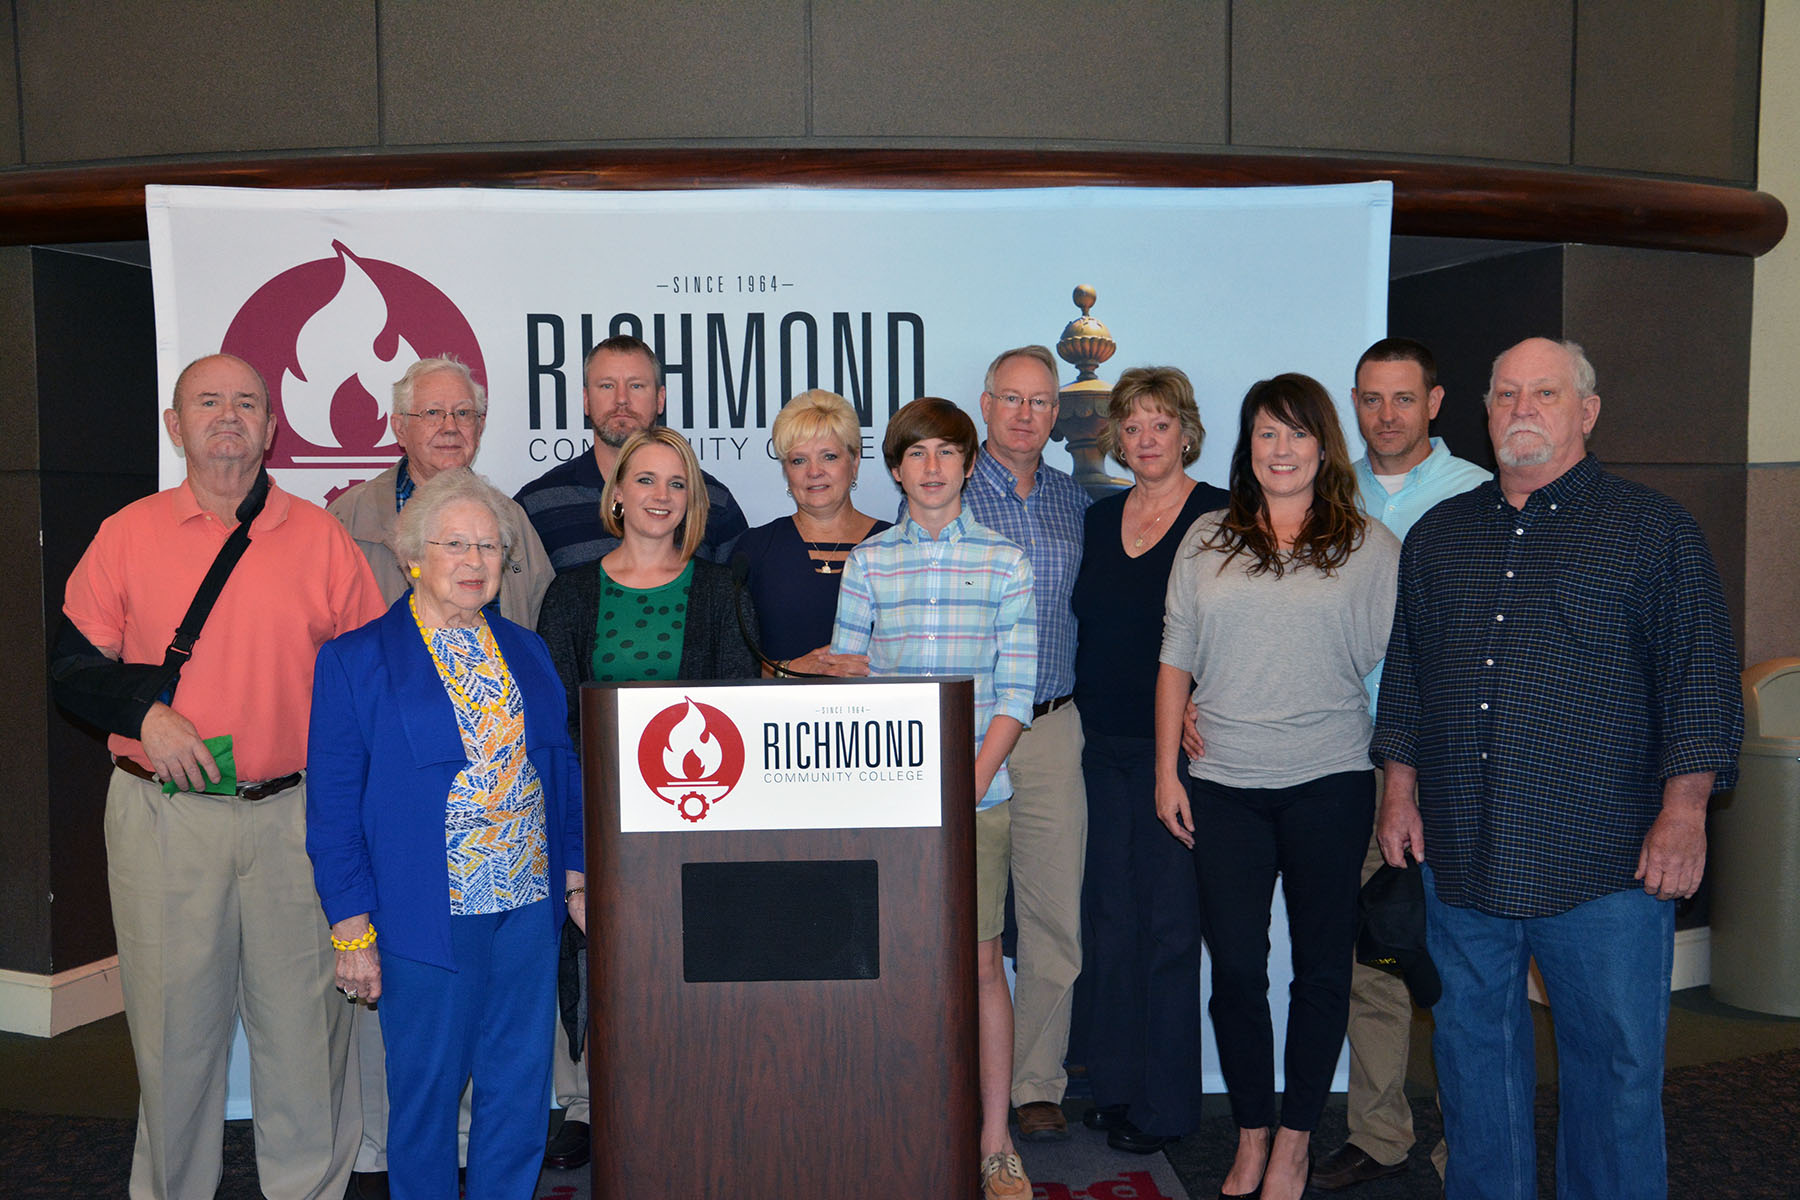 Pictured are members of the Joshua Michael Lamm family who established a scholarship in Josh's memory at Richmond Community College.